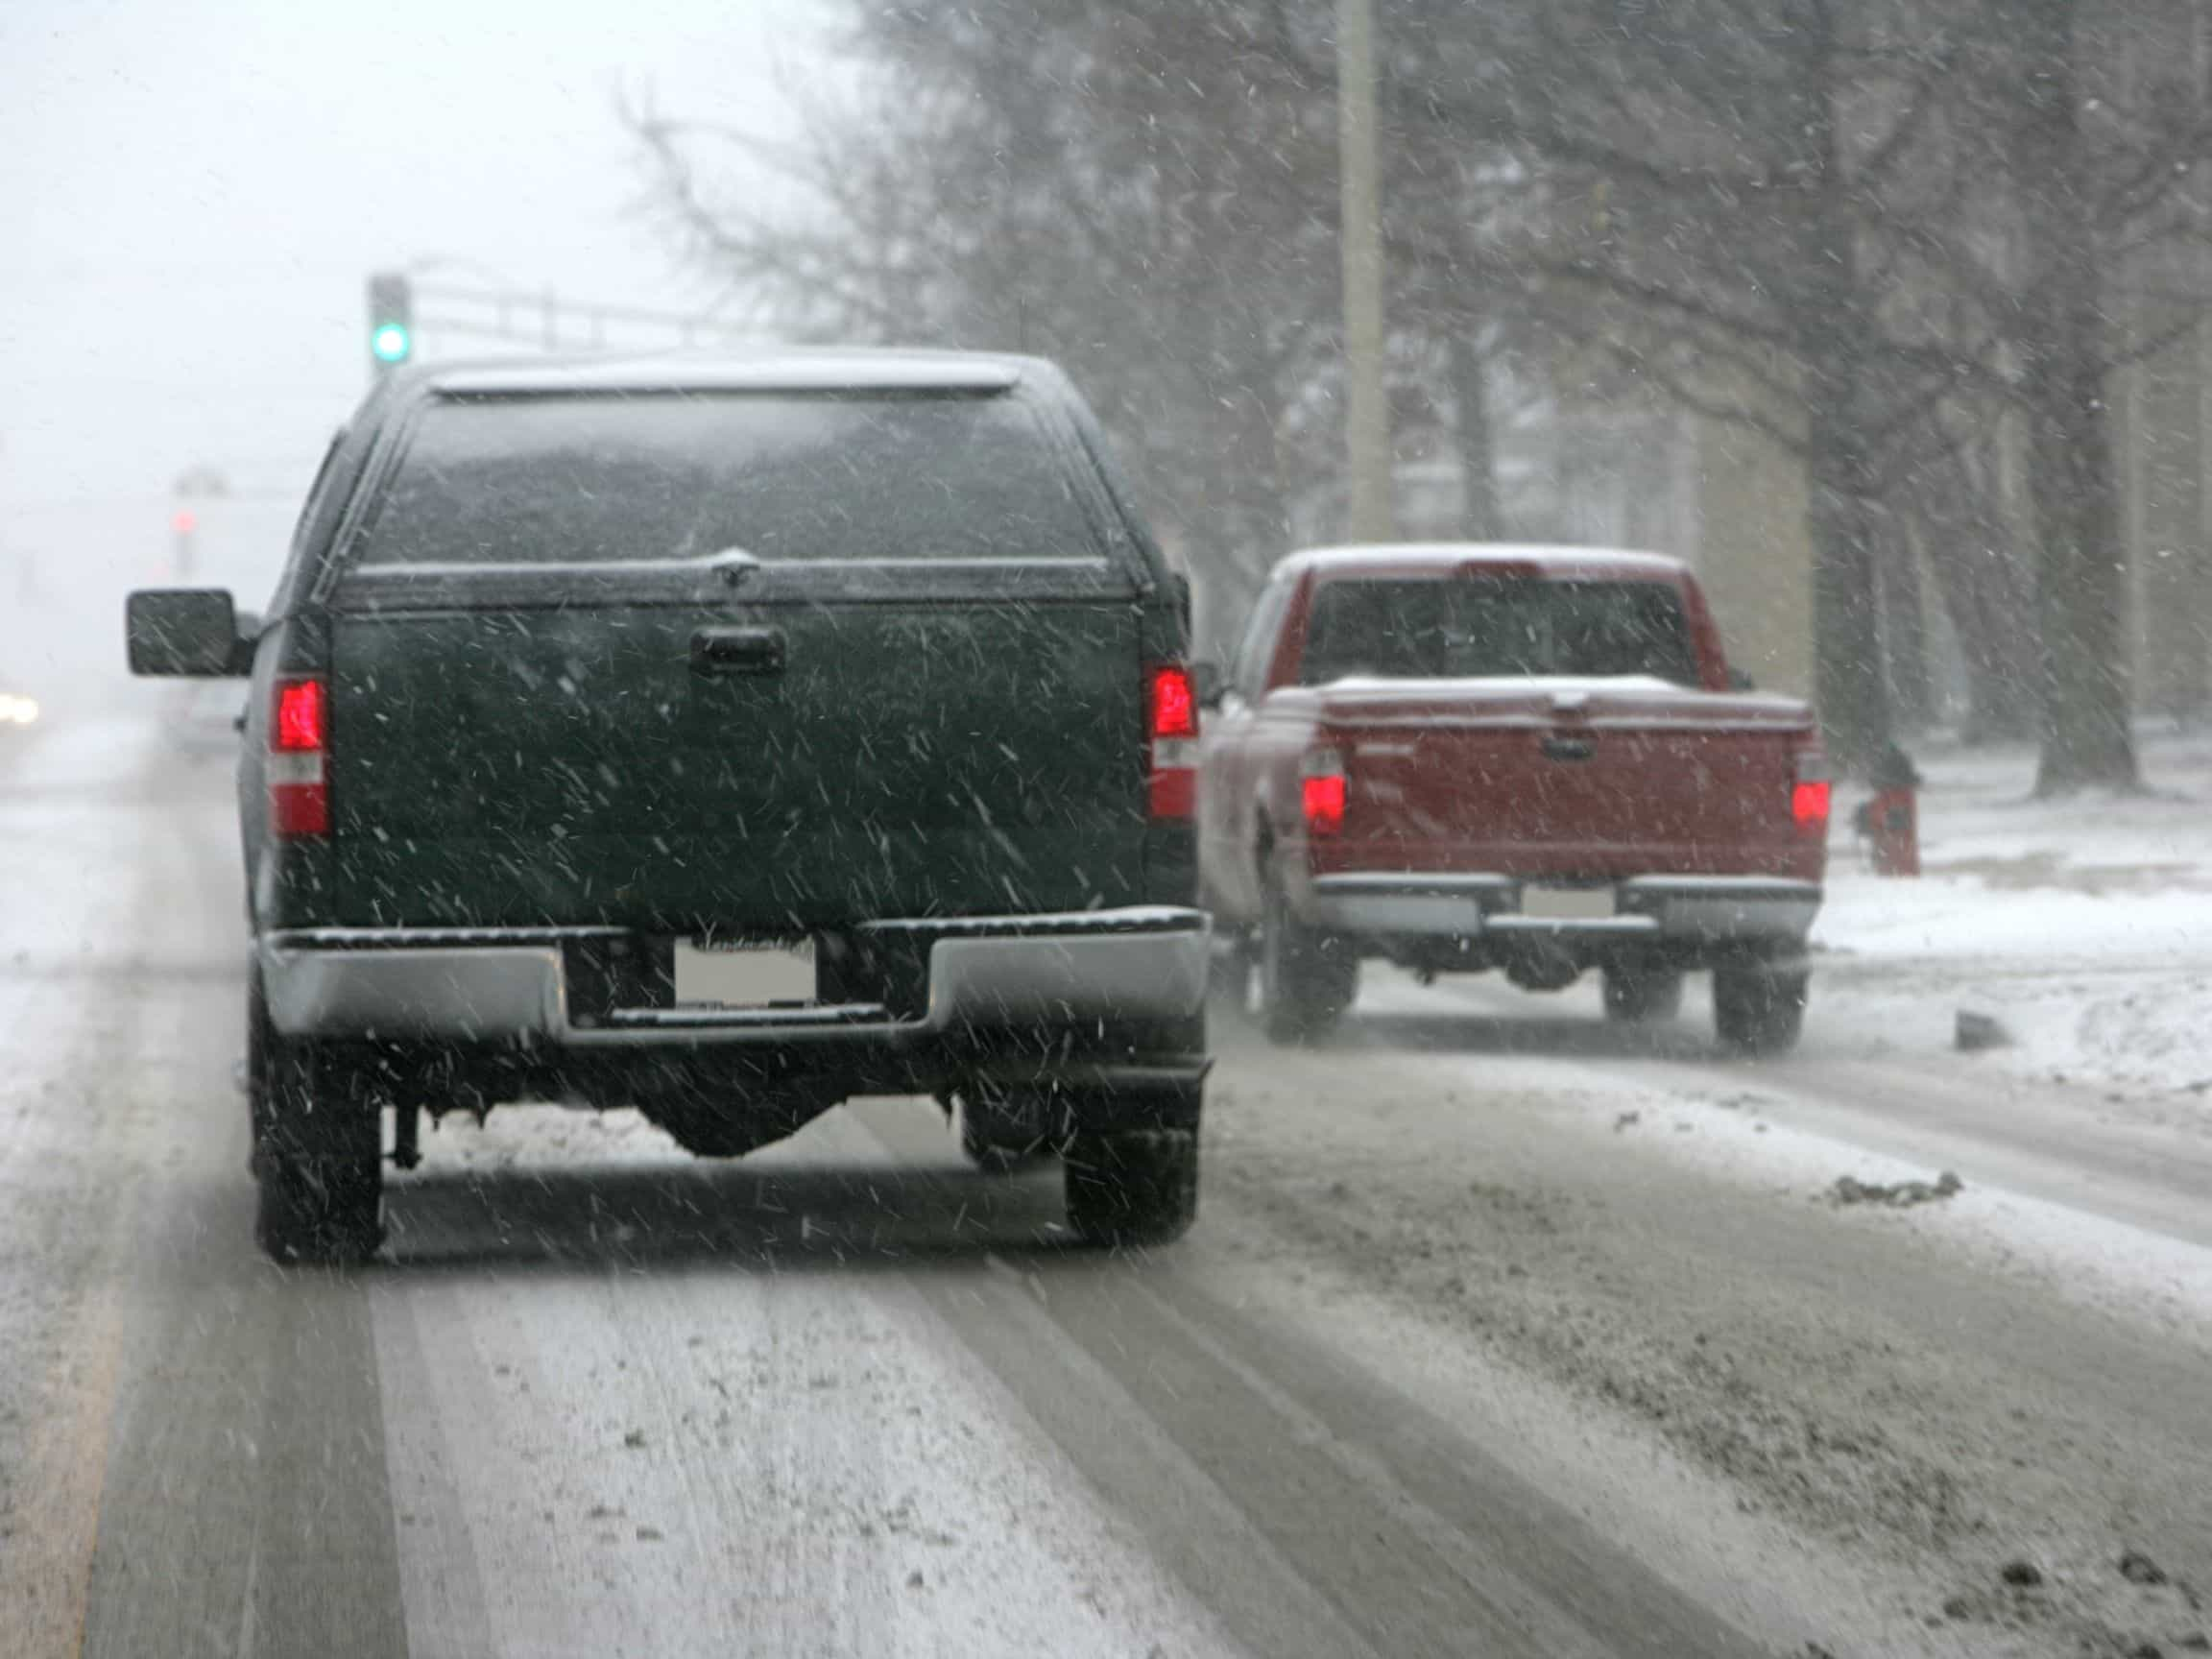 Two trucks driving on a snowy road